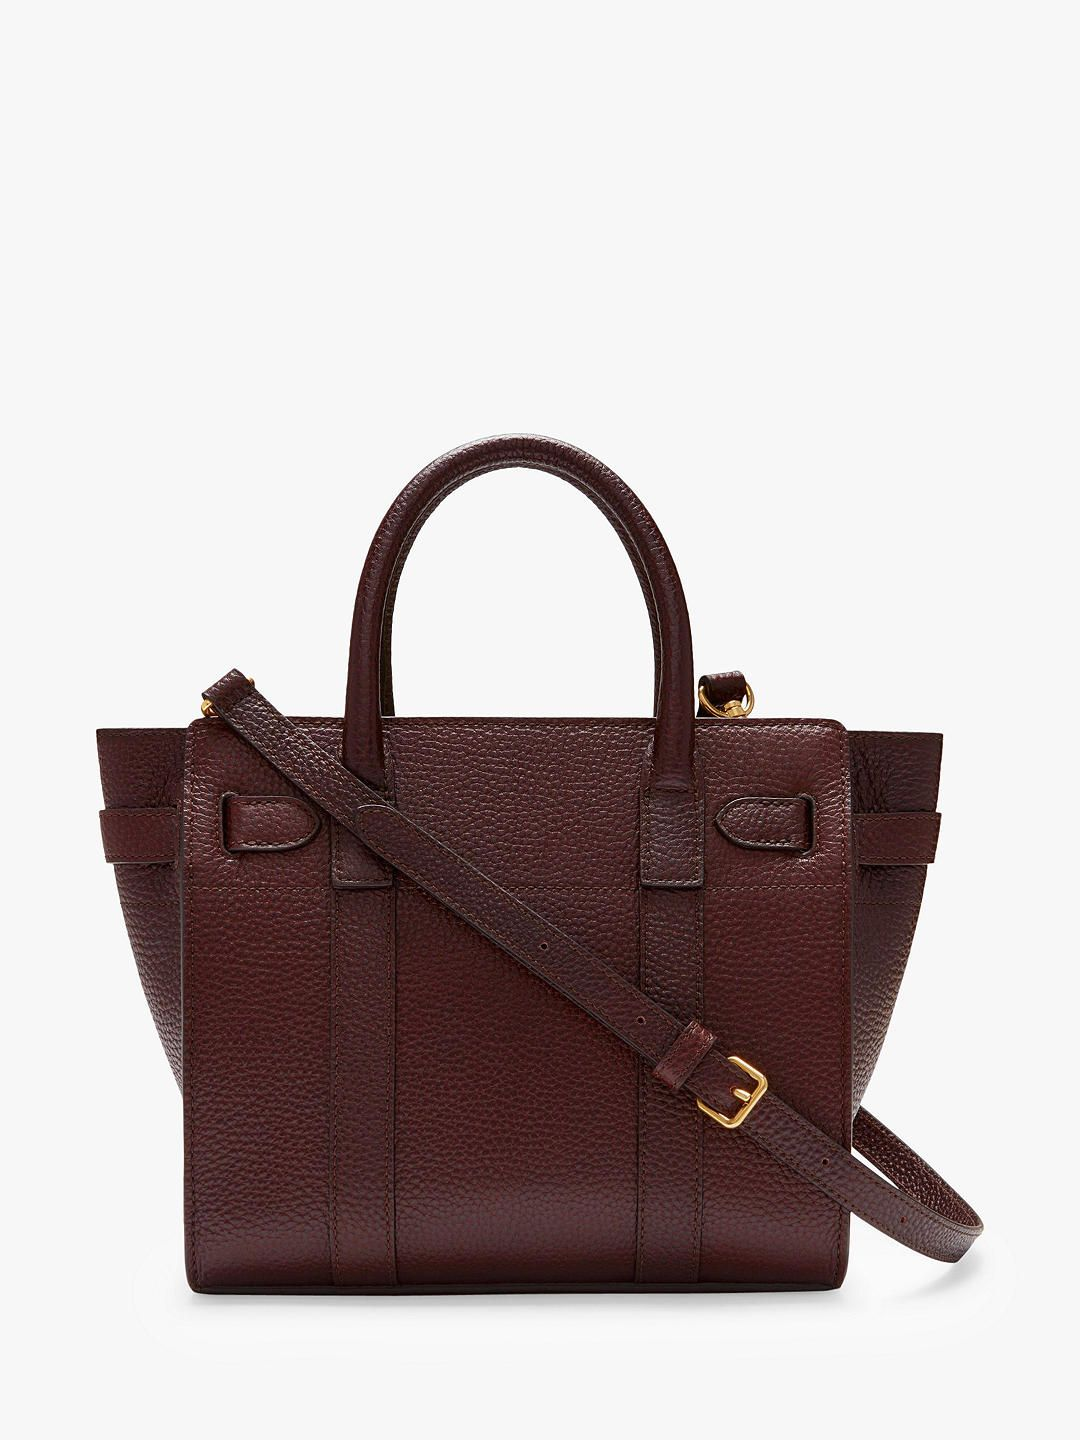 49e51c67a BuyMulberry Mini Bayswater Zipped Grain Veg Tanned Leather Tote Bag,  Oxblood Online at johnlewis.com